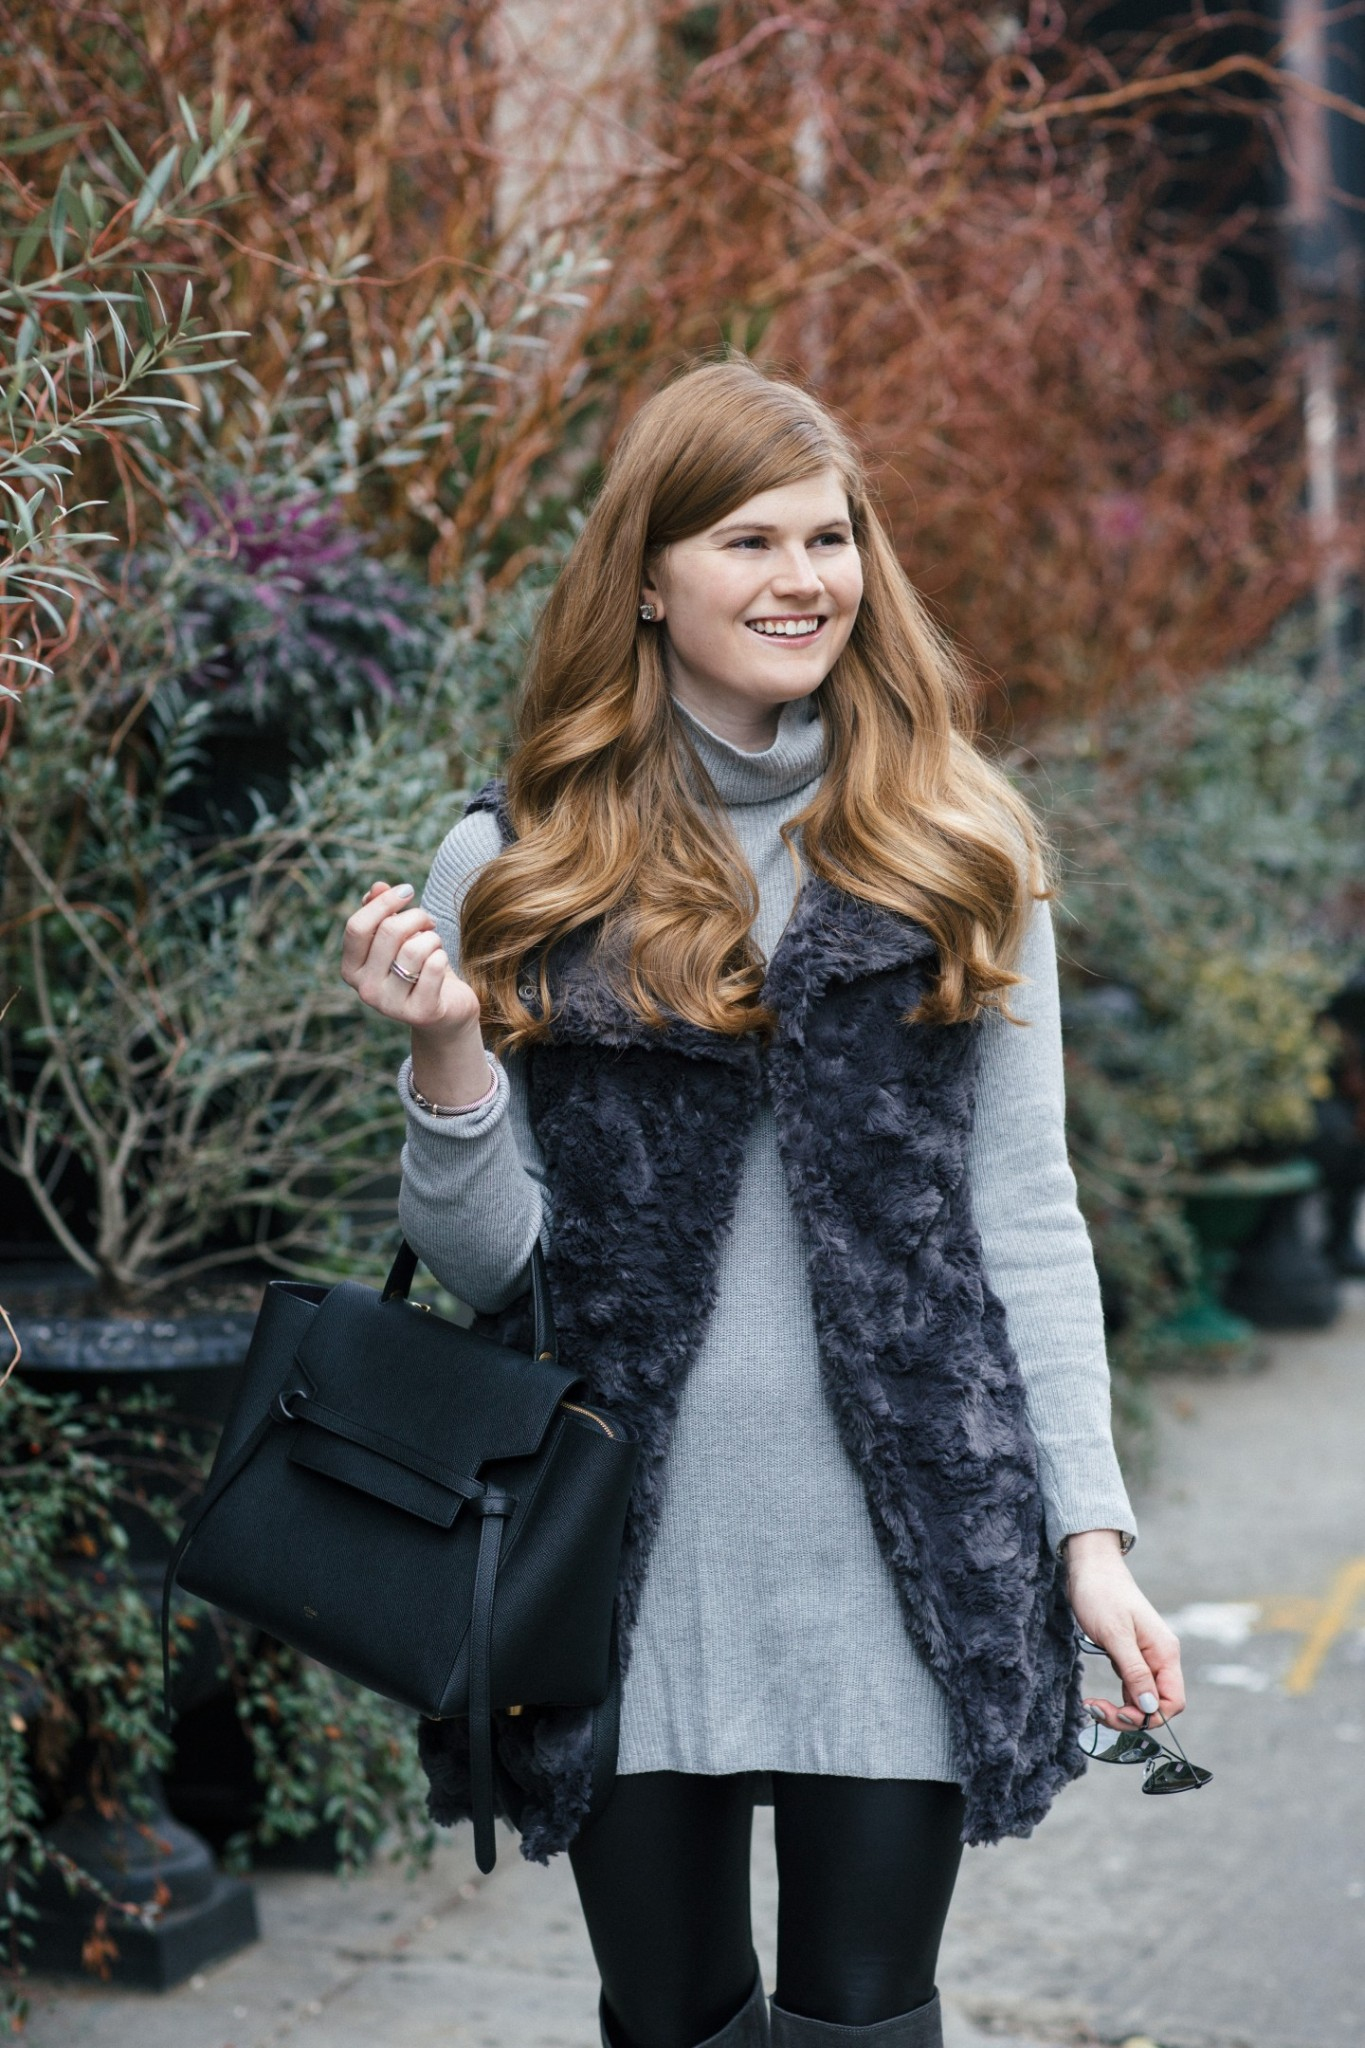 Lifestyle blogger Mollie Sheperdson styles a faux fur vest and OTK boots